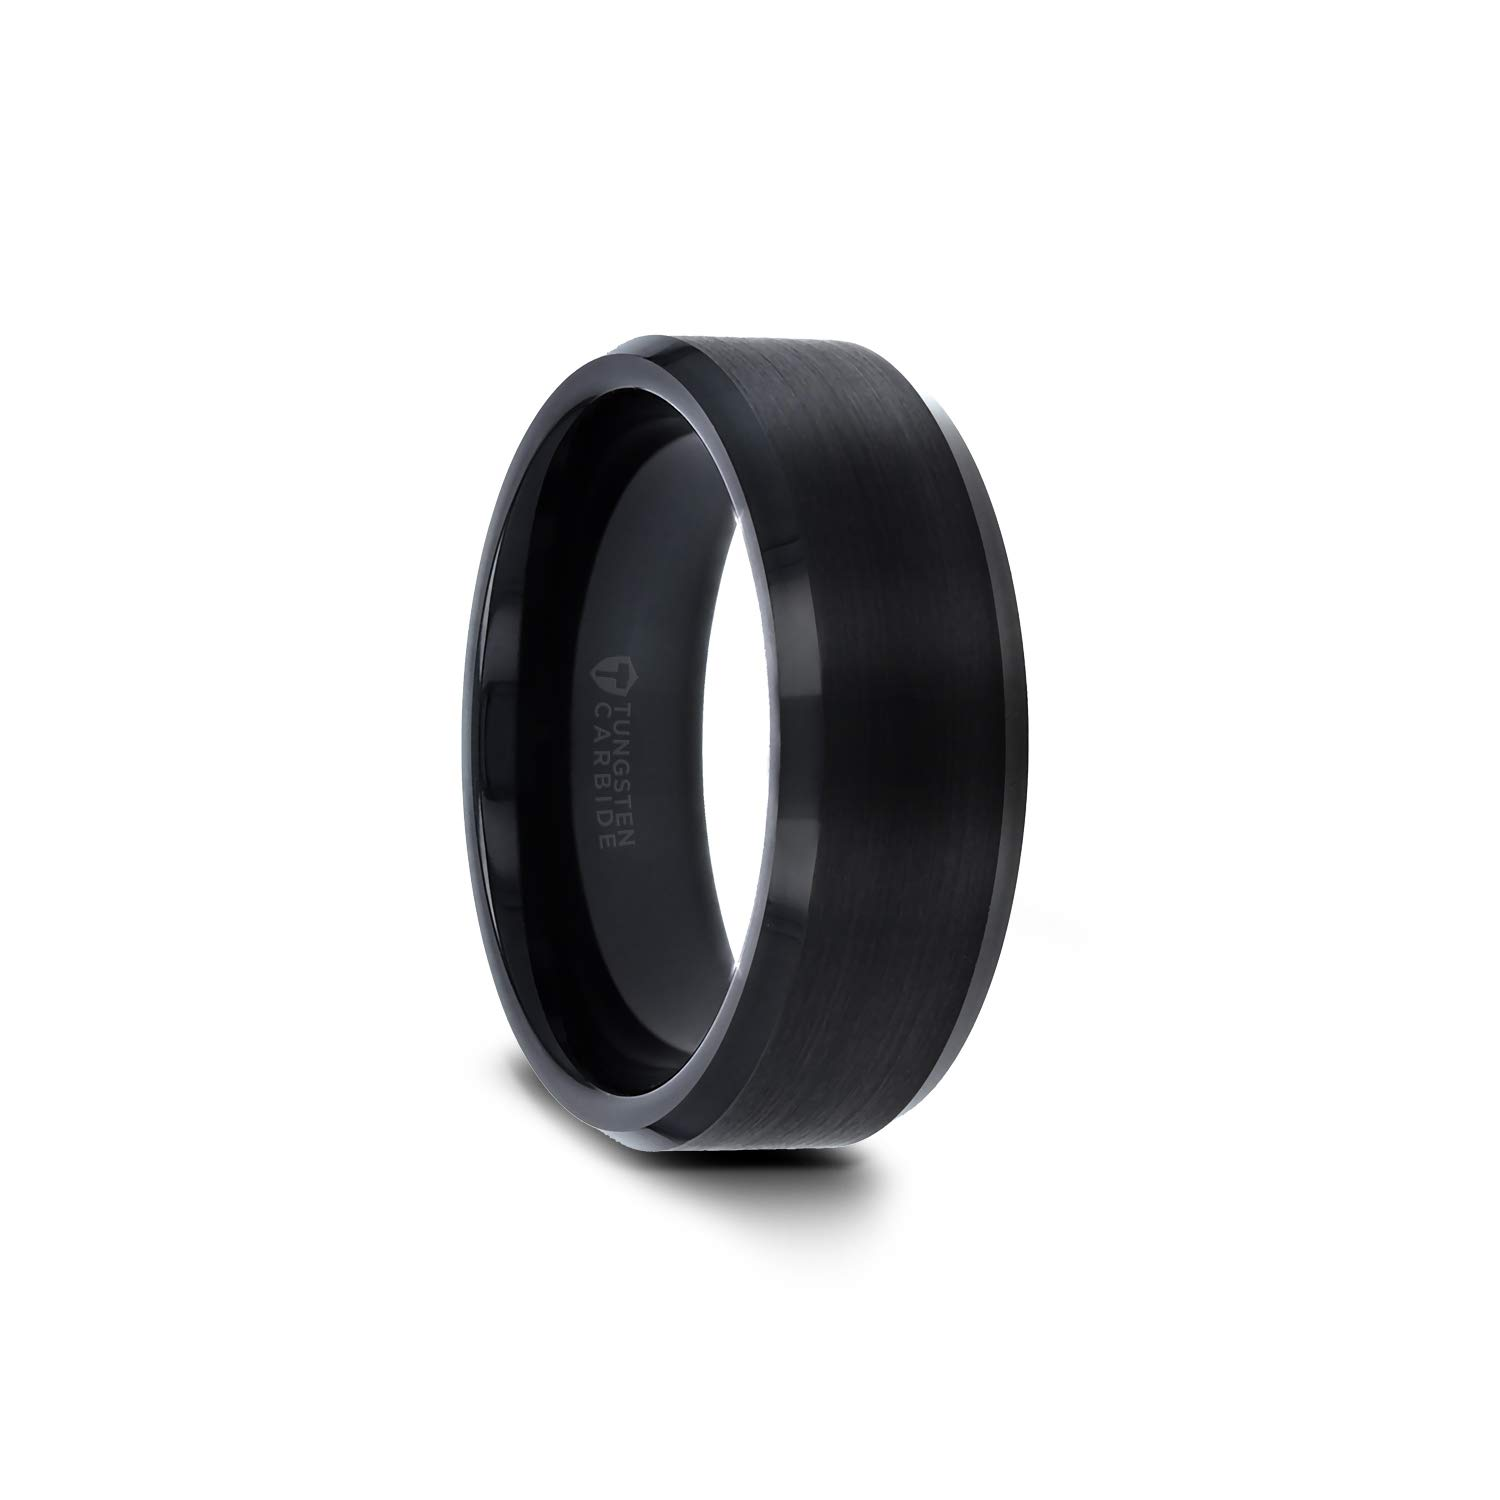 Elise Black Tungsten Wedding Ring Band with Polished Beveled Edges and Brush Finished Center - 6mm - 10mm (Tungsten-7mm, 10) by Thorsten Rings